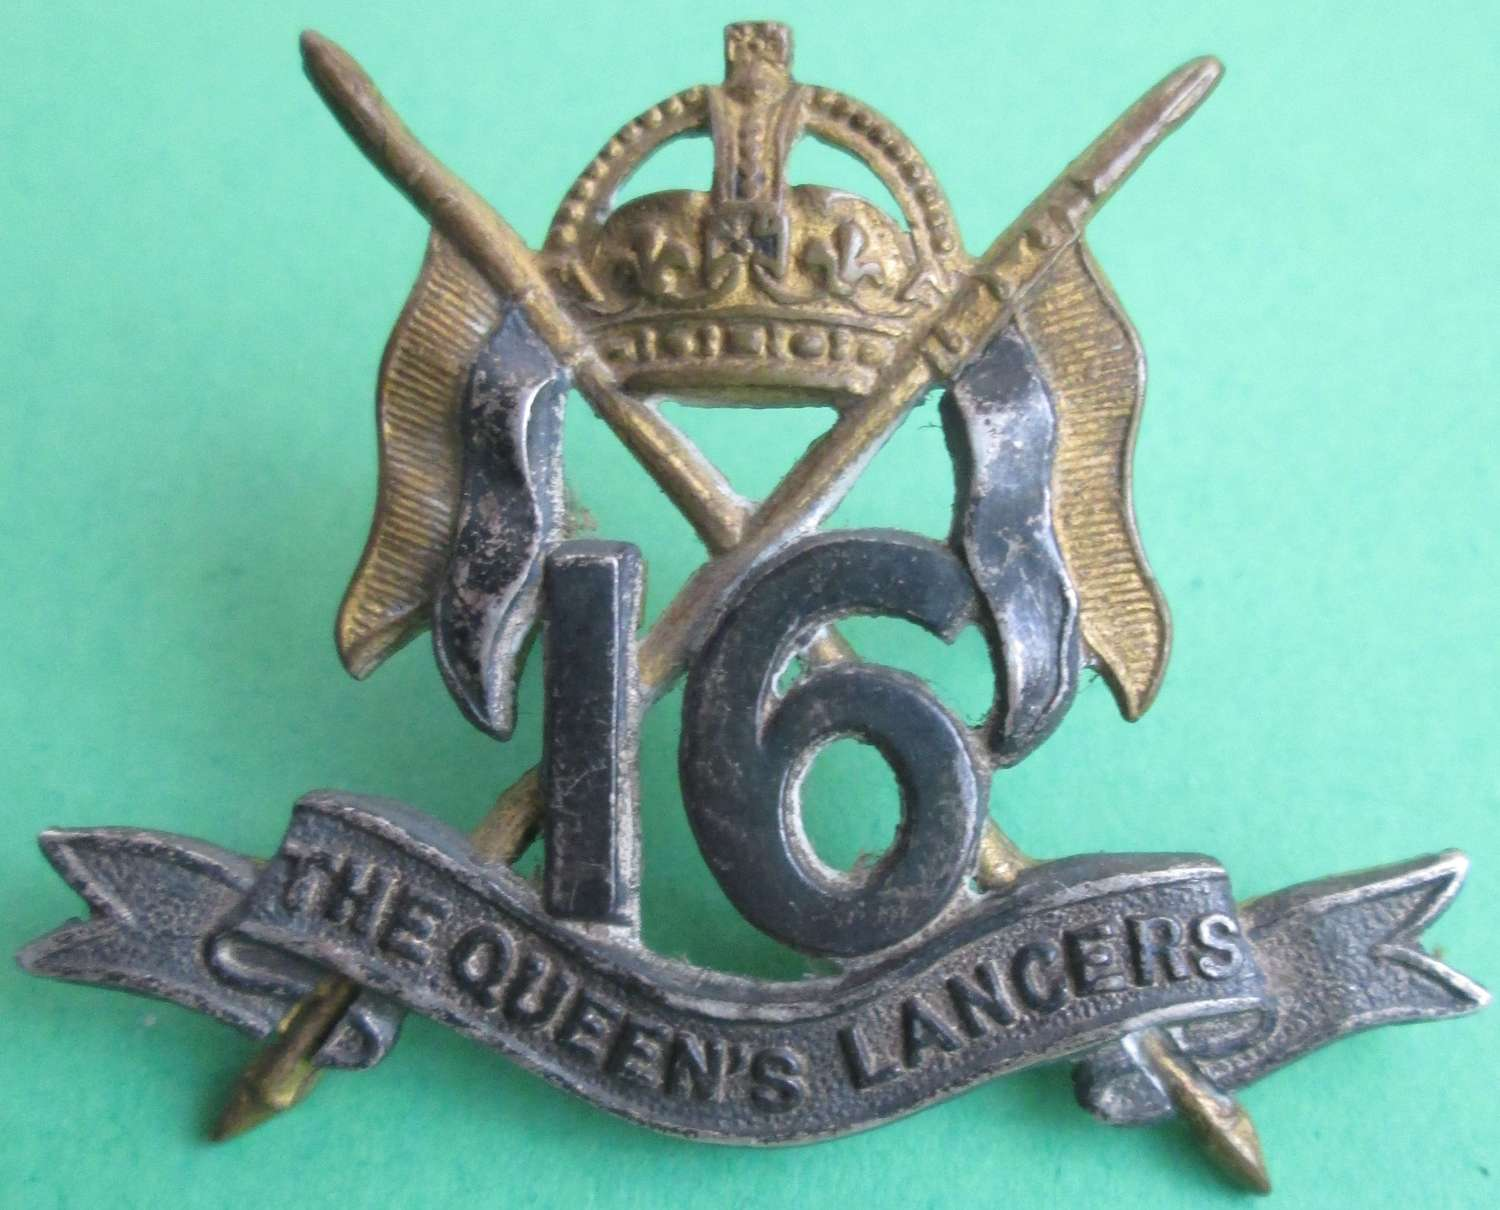 THE 16TH QUEEN'S LANCERS MARKED S FOR SILVER WWII EXAMPLE